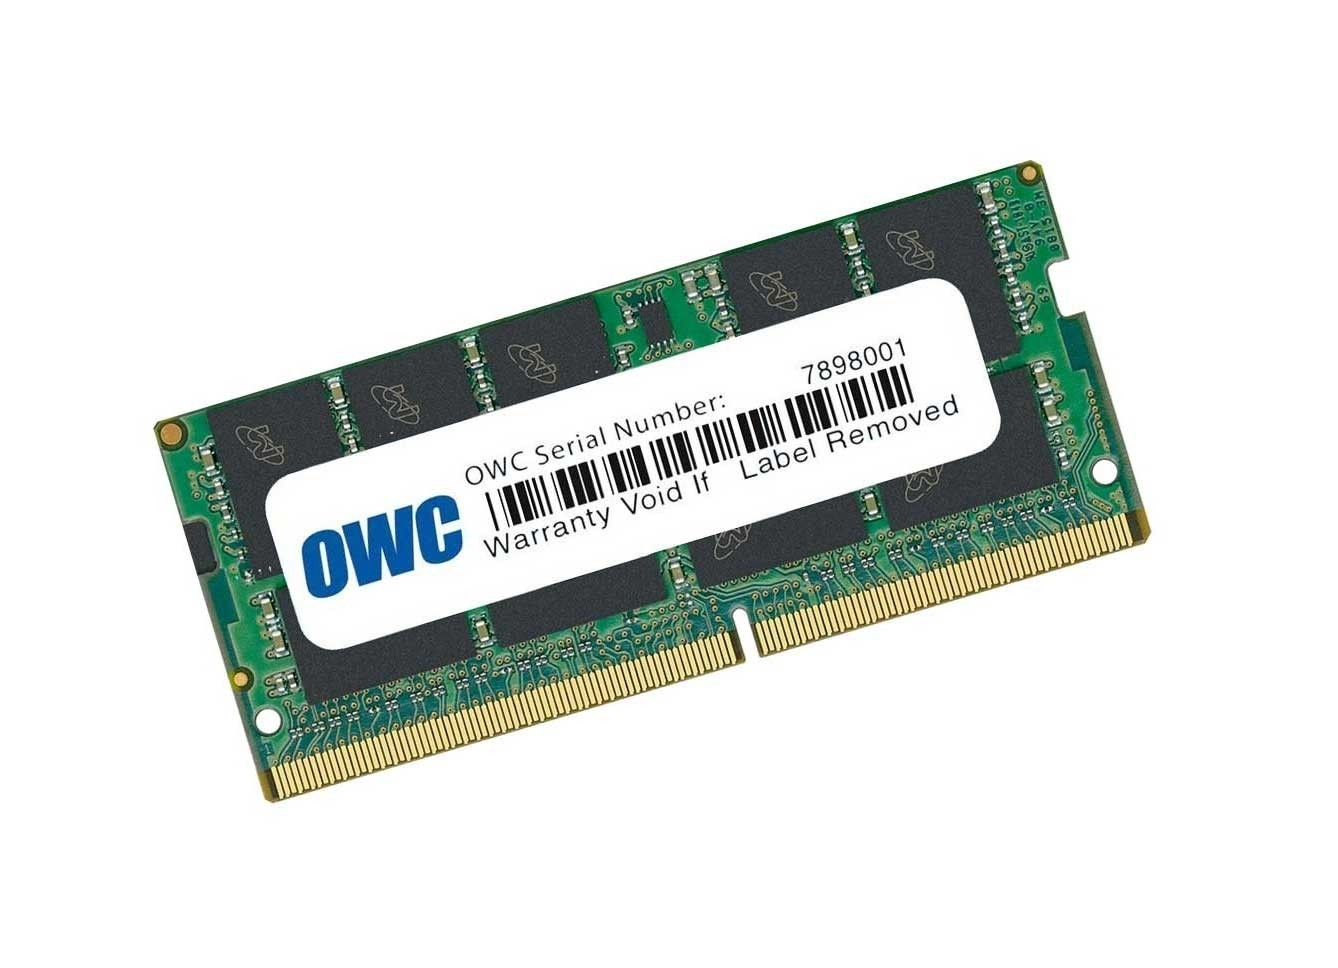 32.0GB 2666MHz DDR4 SO-DIMM PC4-21300 SO-DIMM 260 Pin Single Module Memory Upgrade, OWC2666DDR4S32G